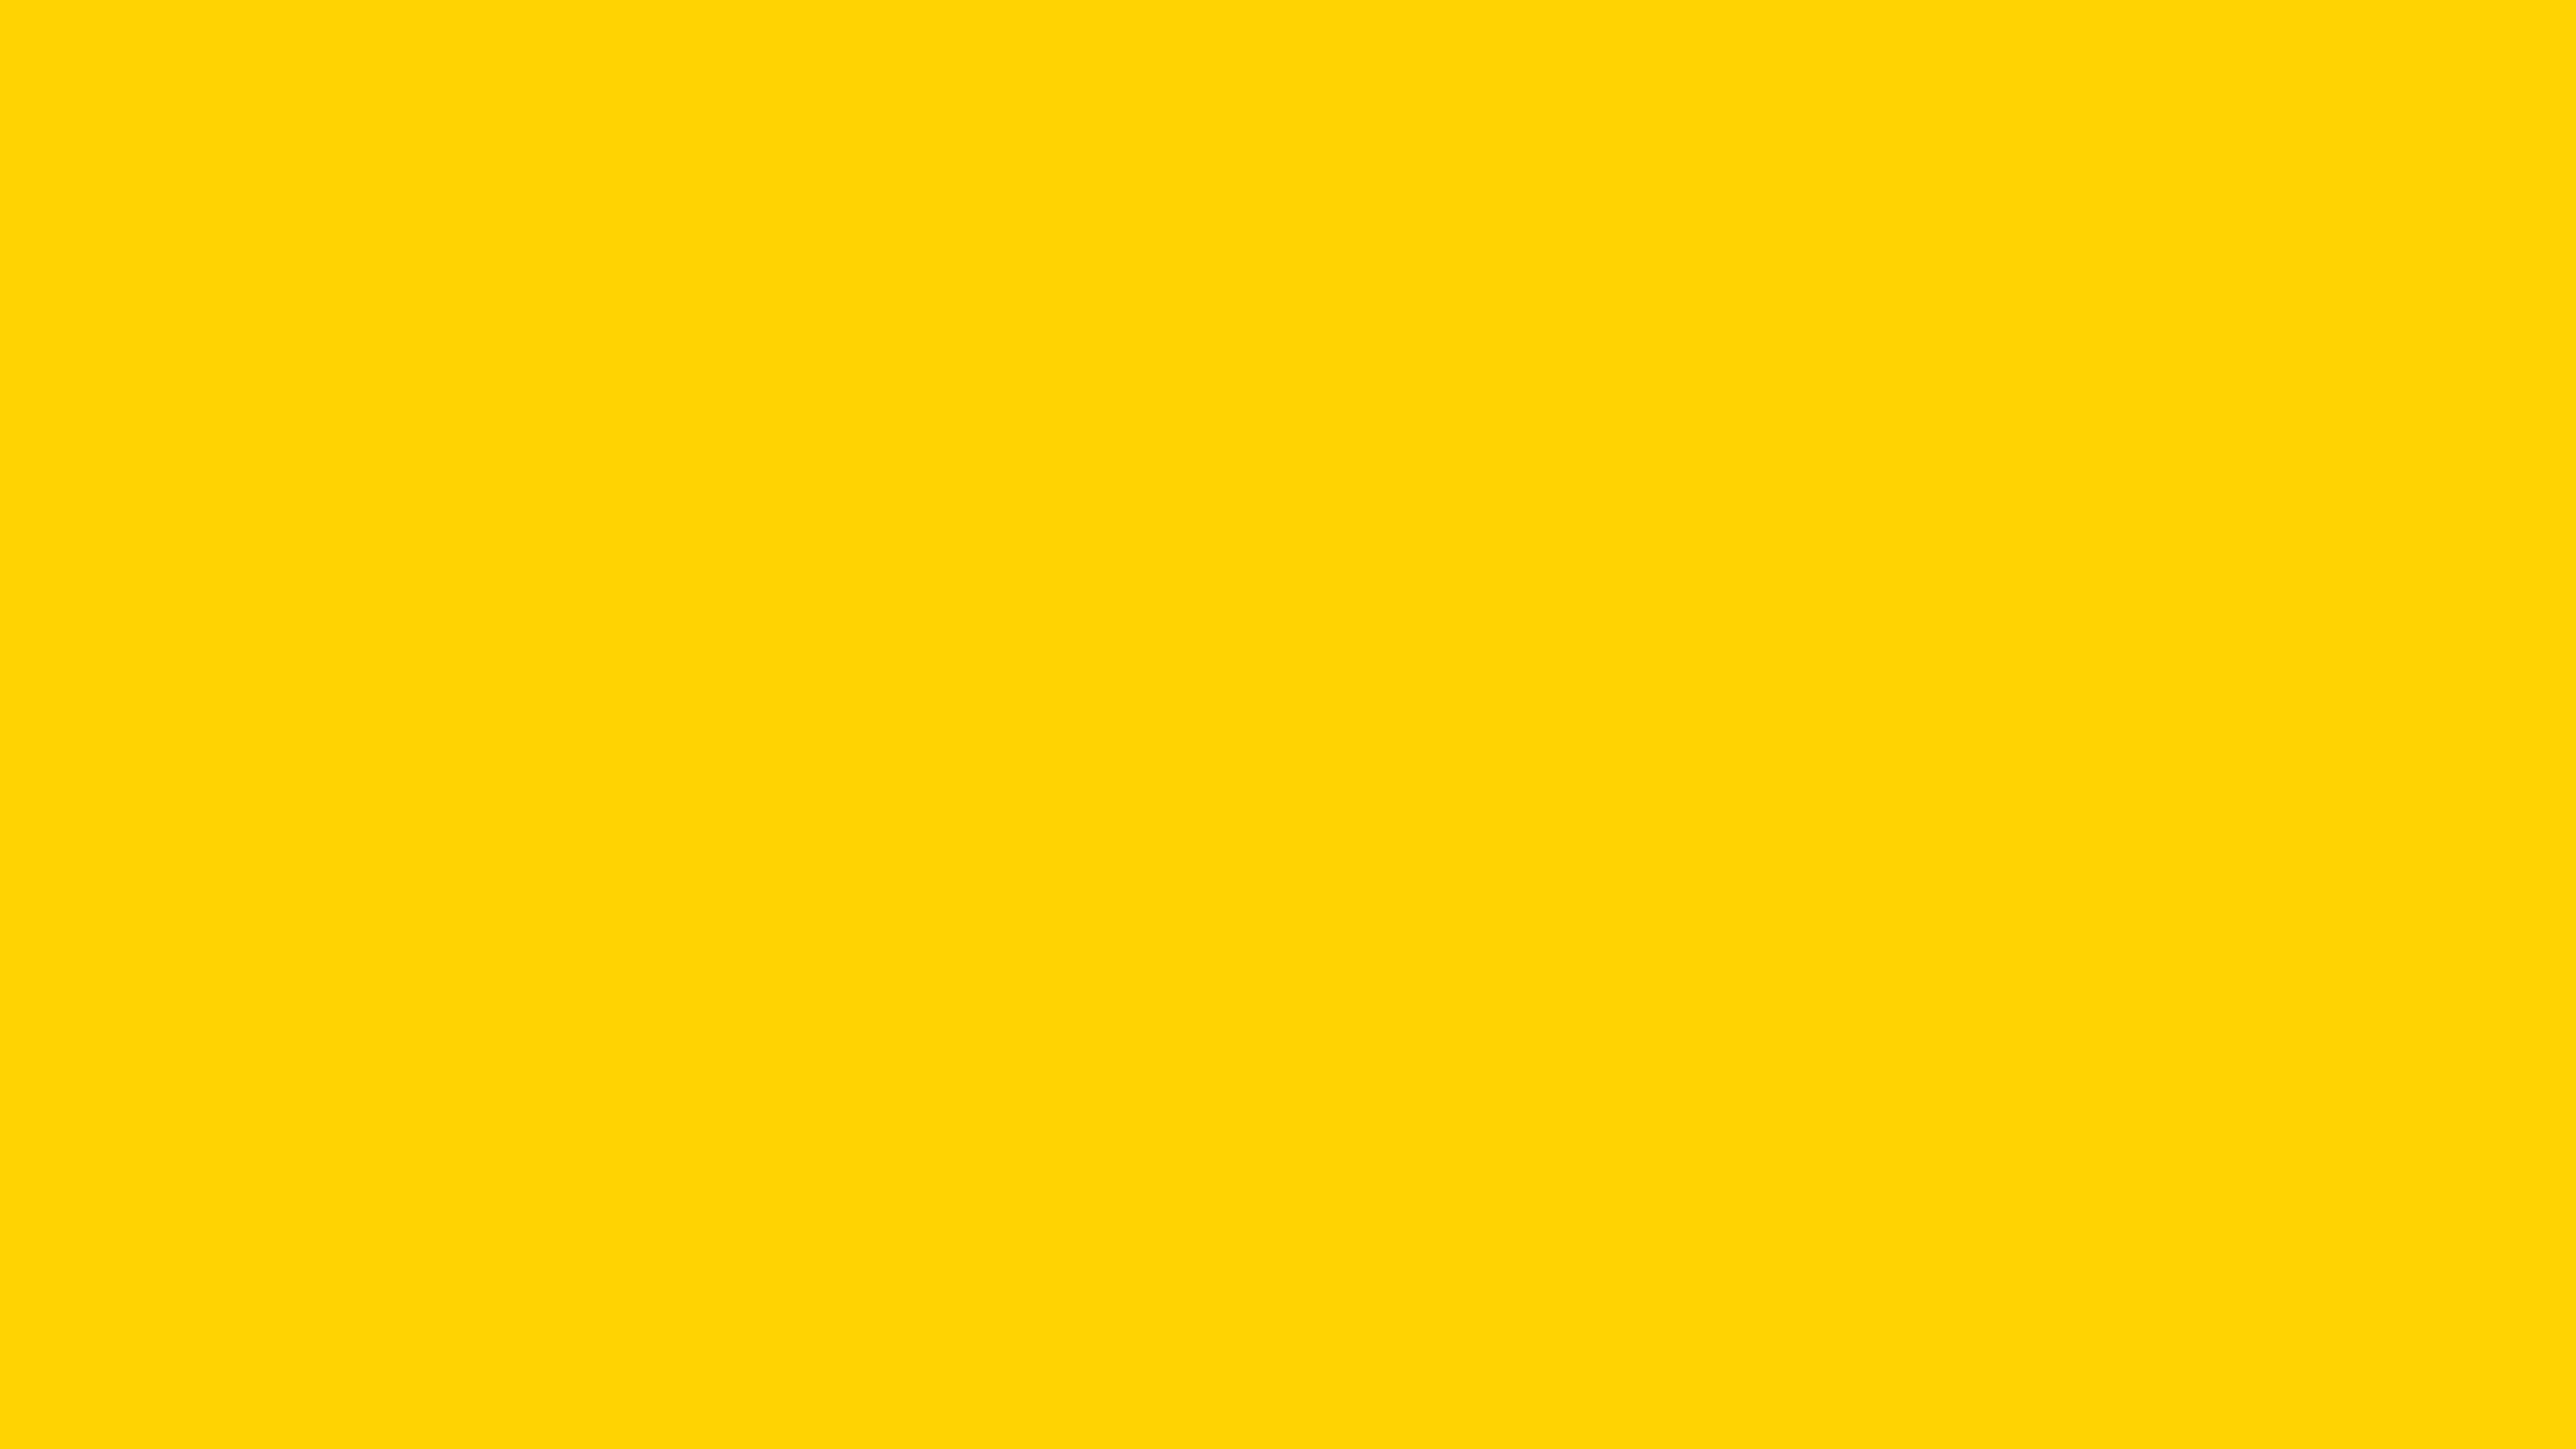 5120x2880 Cyber Yellow Solid Color Background